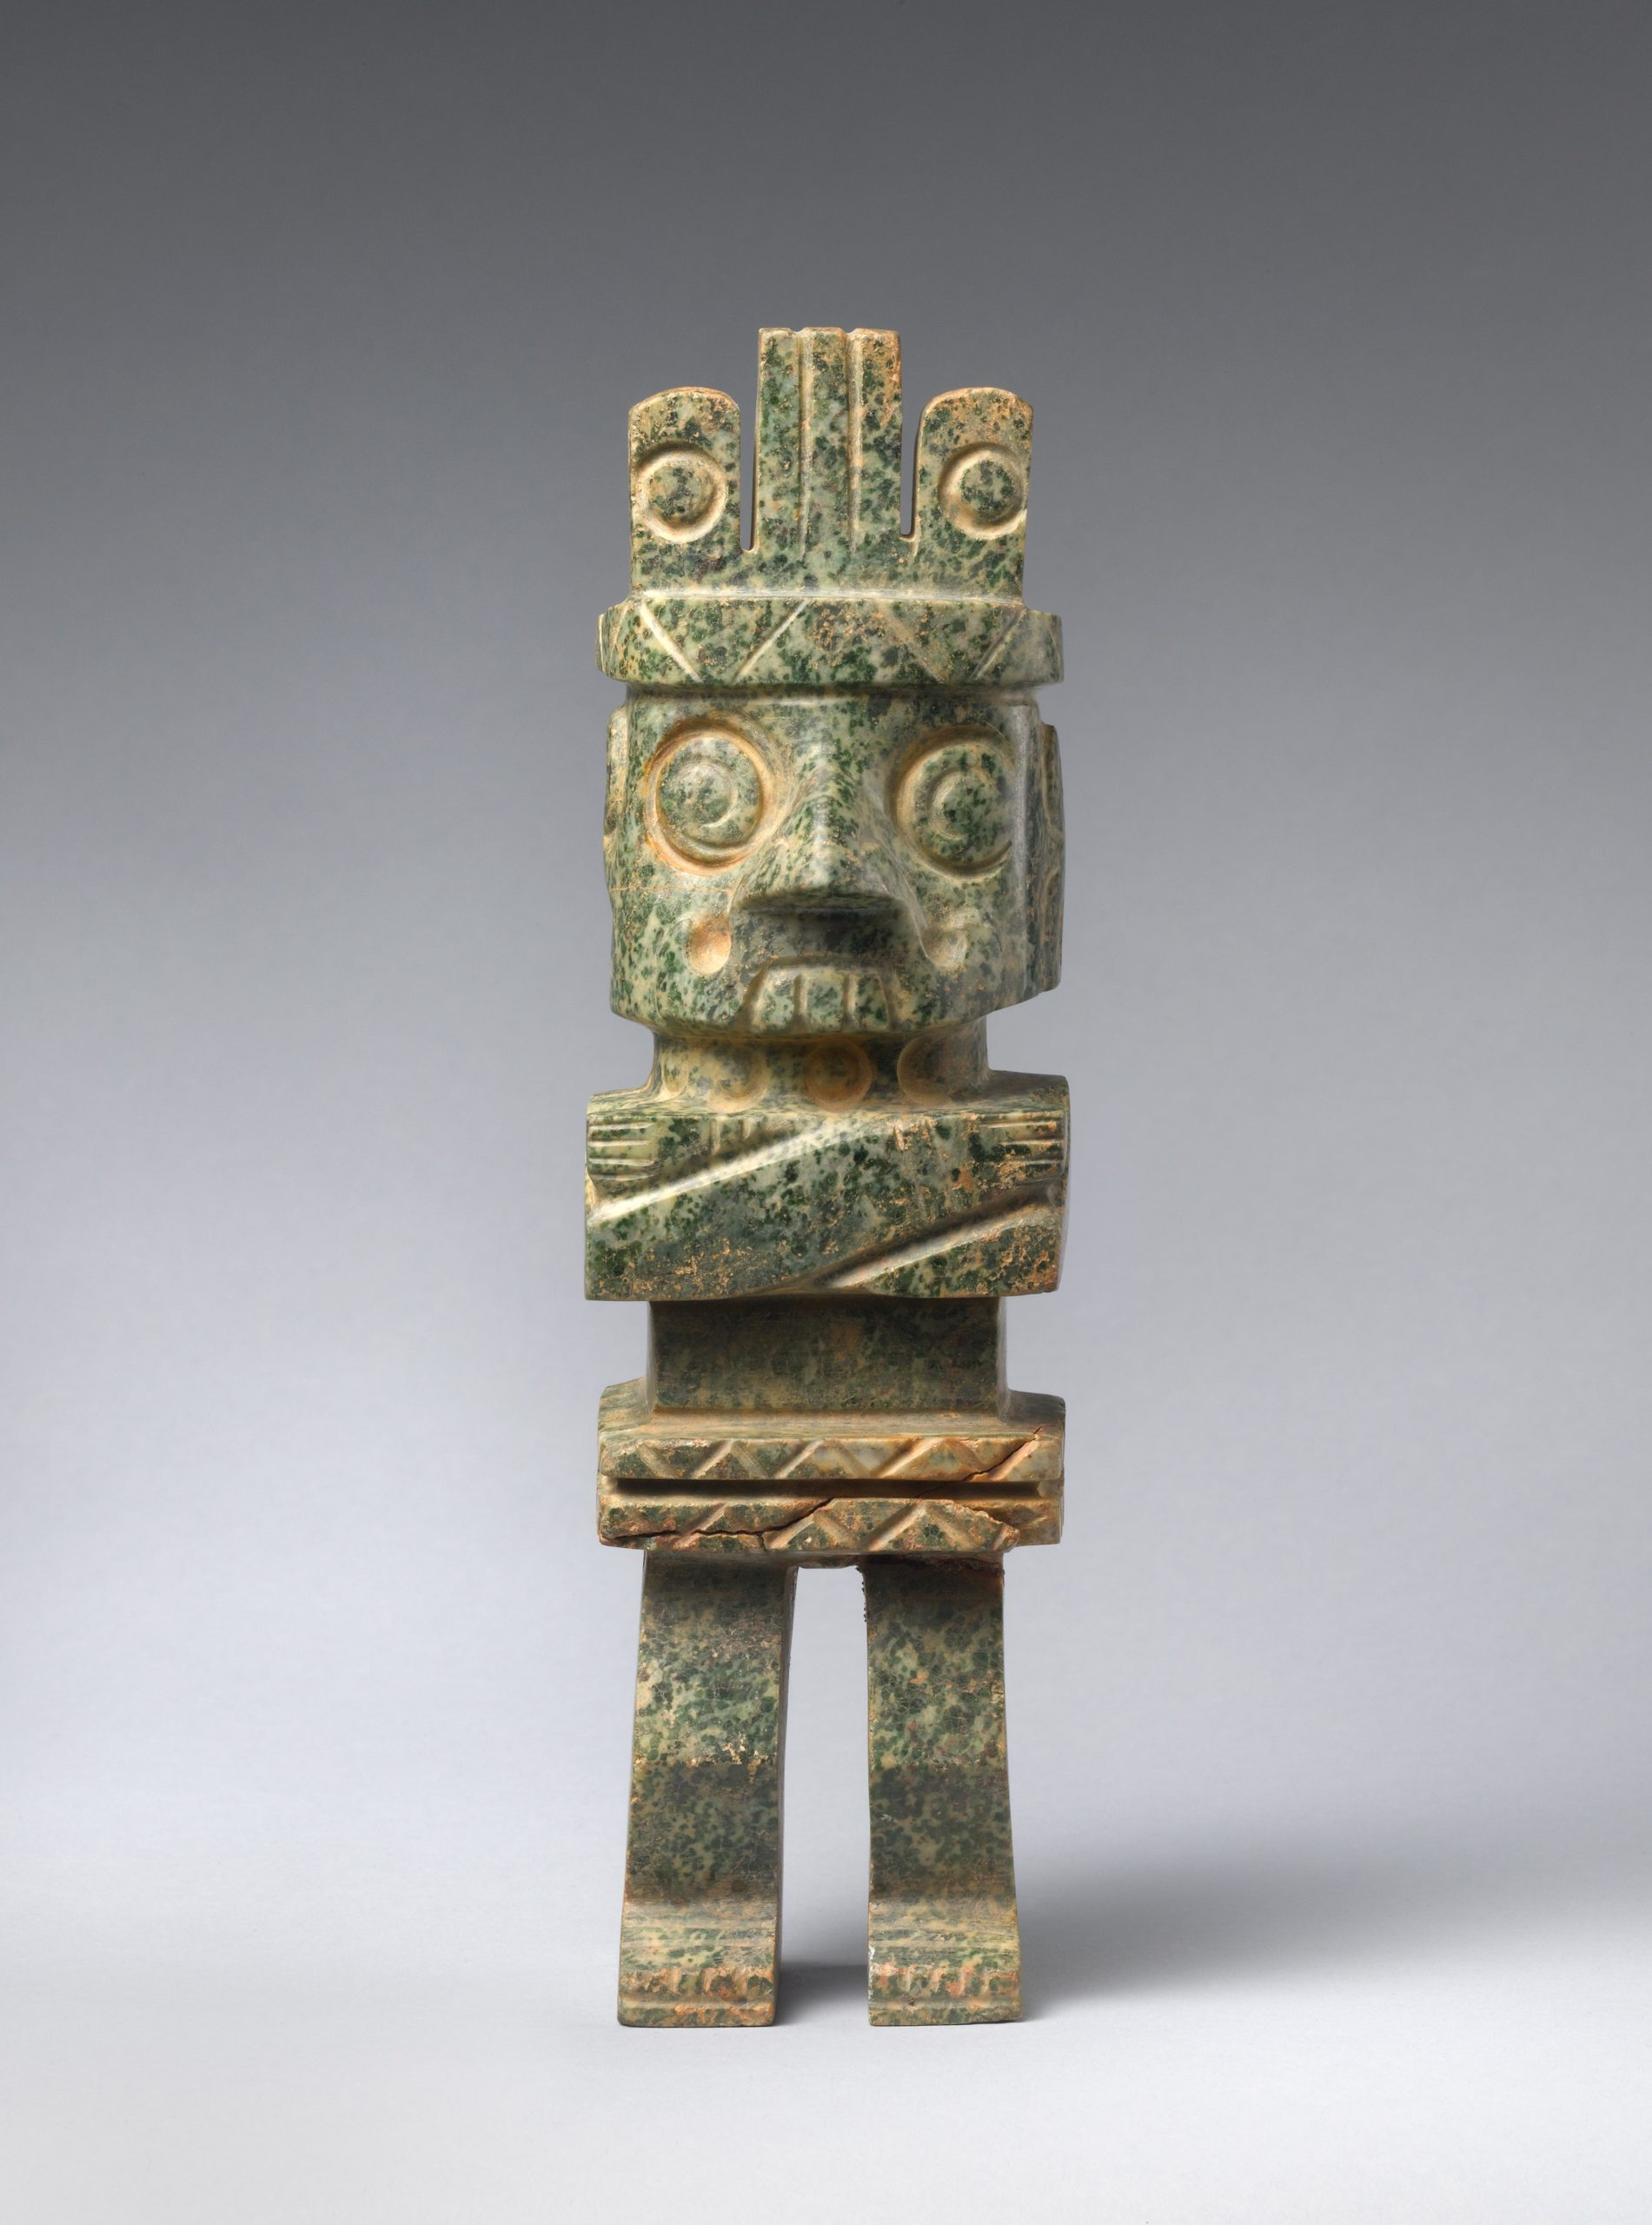 Standing stone figure with large goggle-like eyes, a curled lip, large teeth, folded arms wearing a headdress.